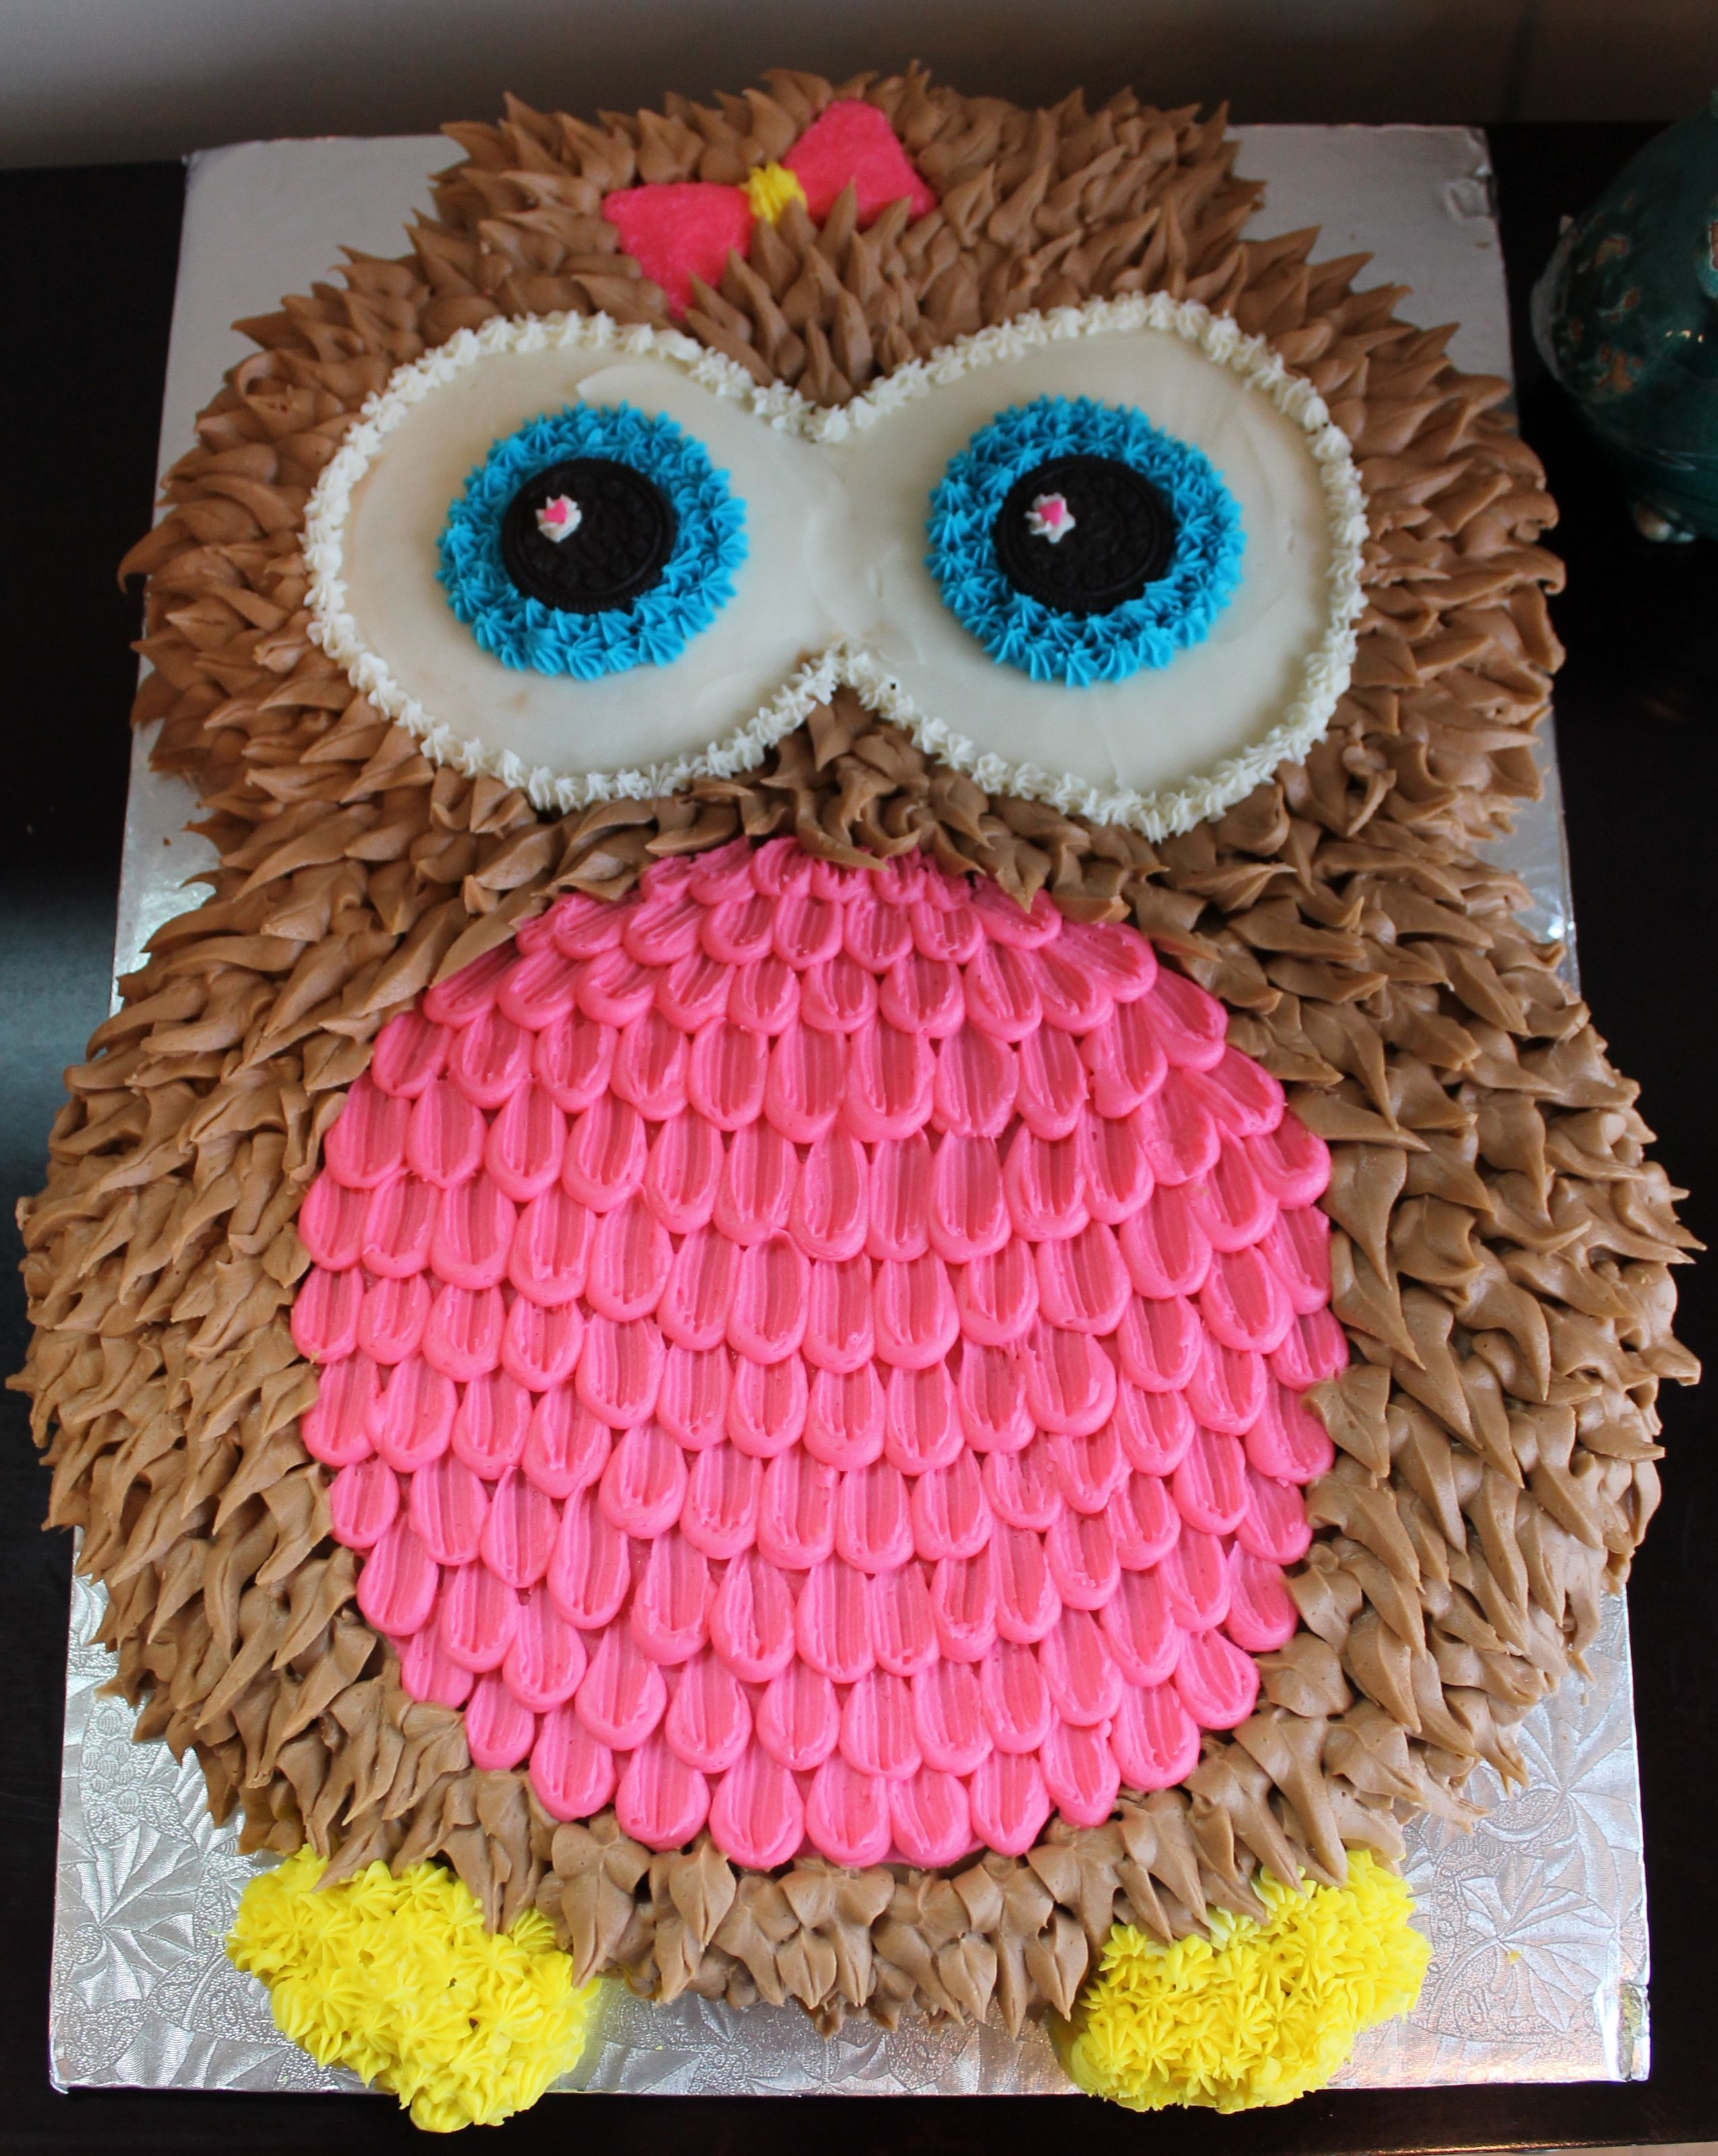 How To Make A Simple Owl Cake